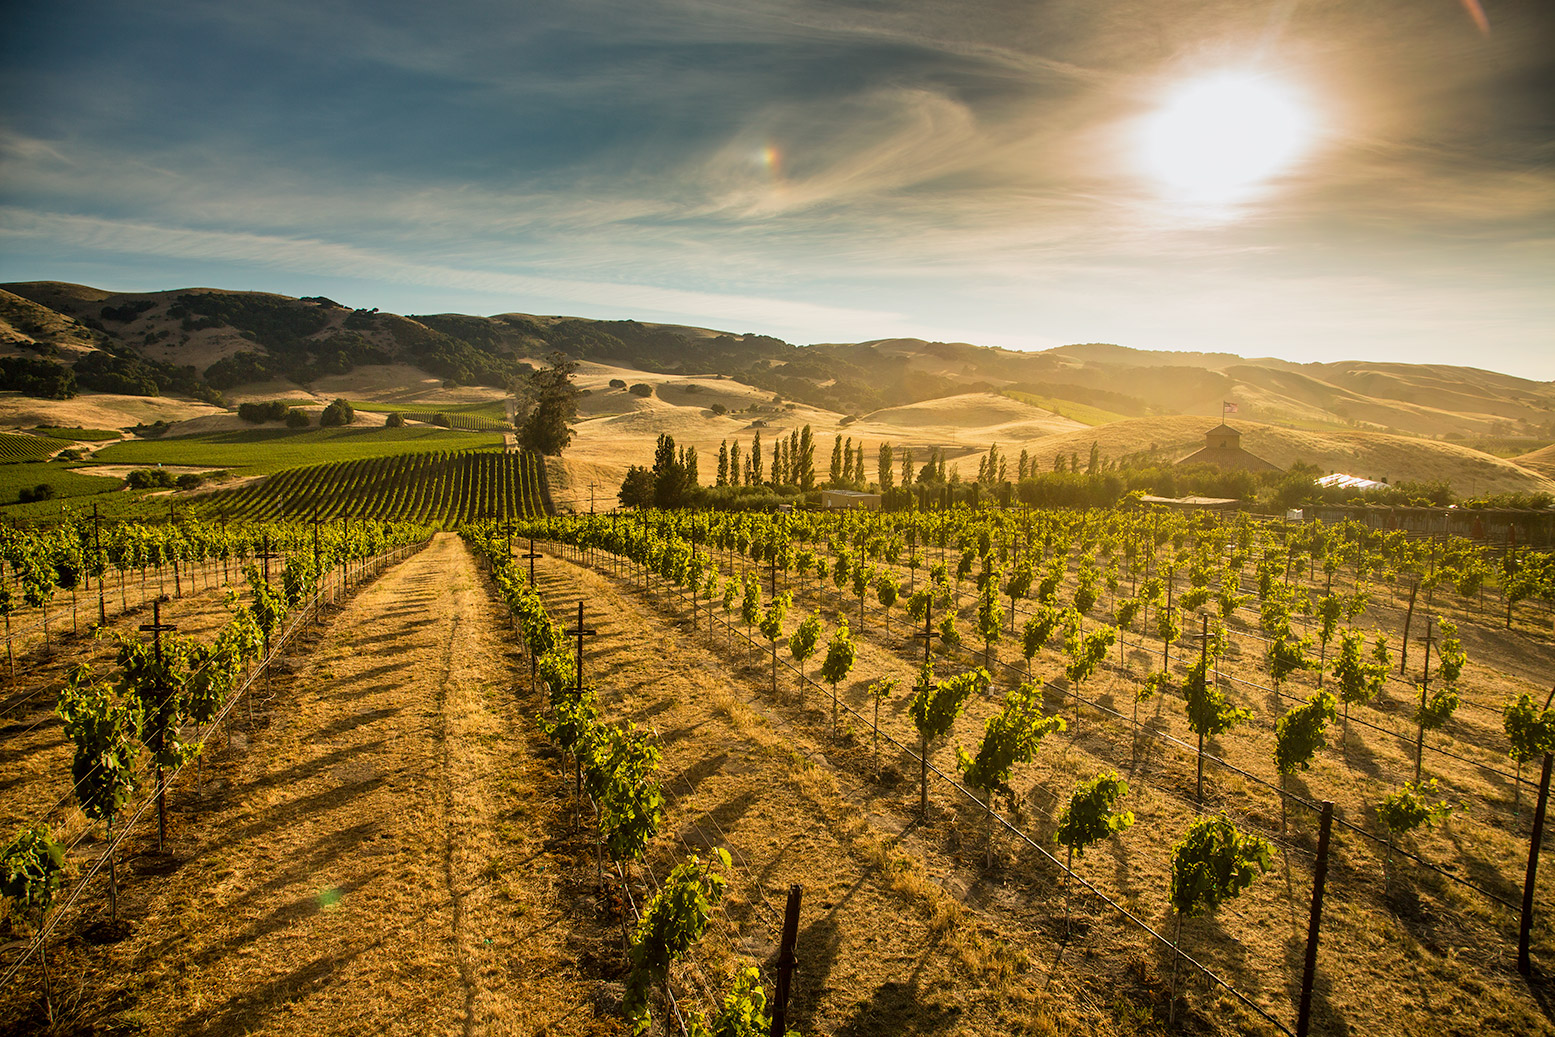 Viansa Winery - Vineyards at Sunset: Rocco Ceselin Photography